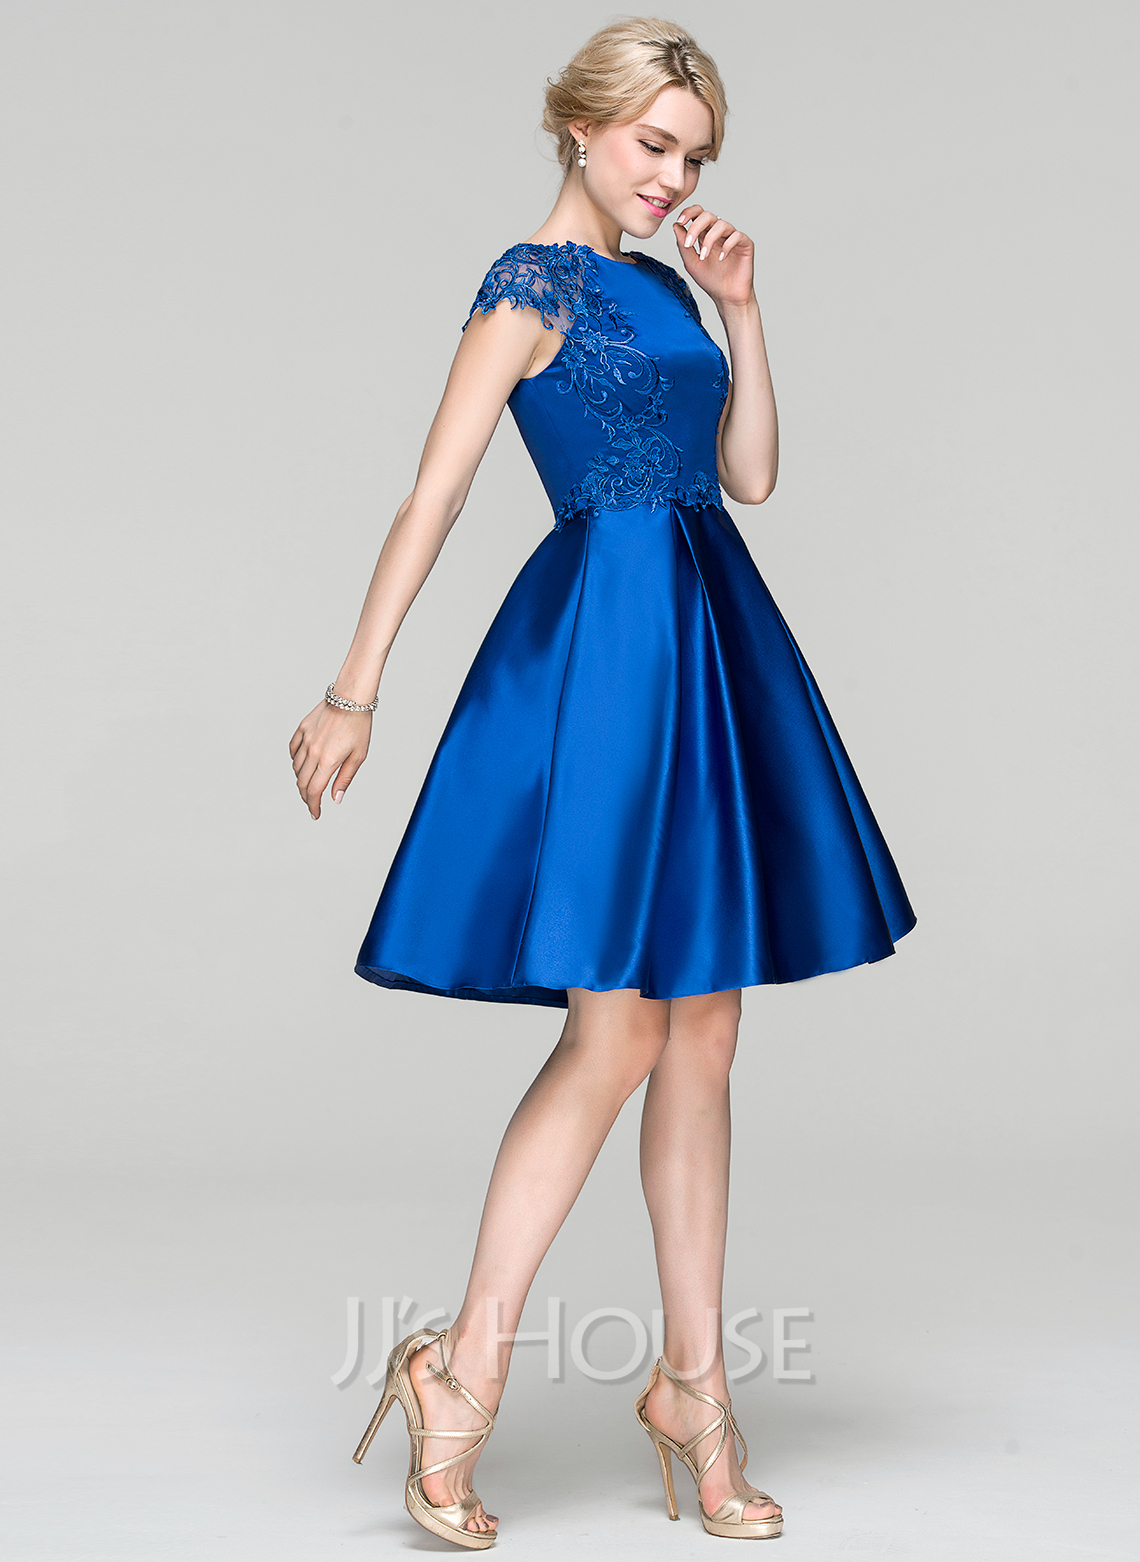 3a728cfb5b4 A-Line Princess Scoop Neck Knee-Length Satin Cocktail Dress. Loading zoom